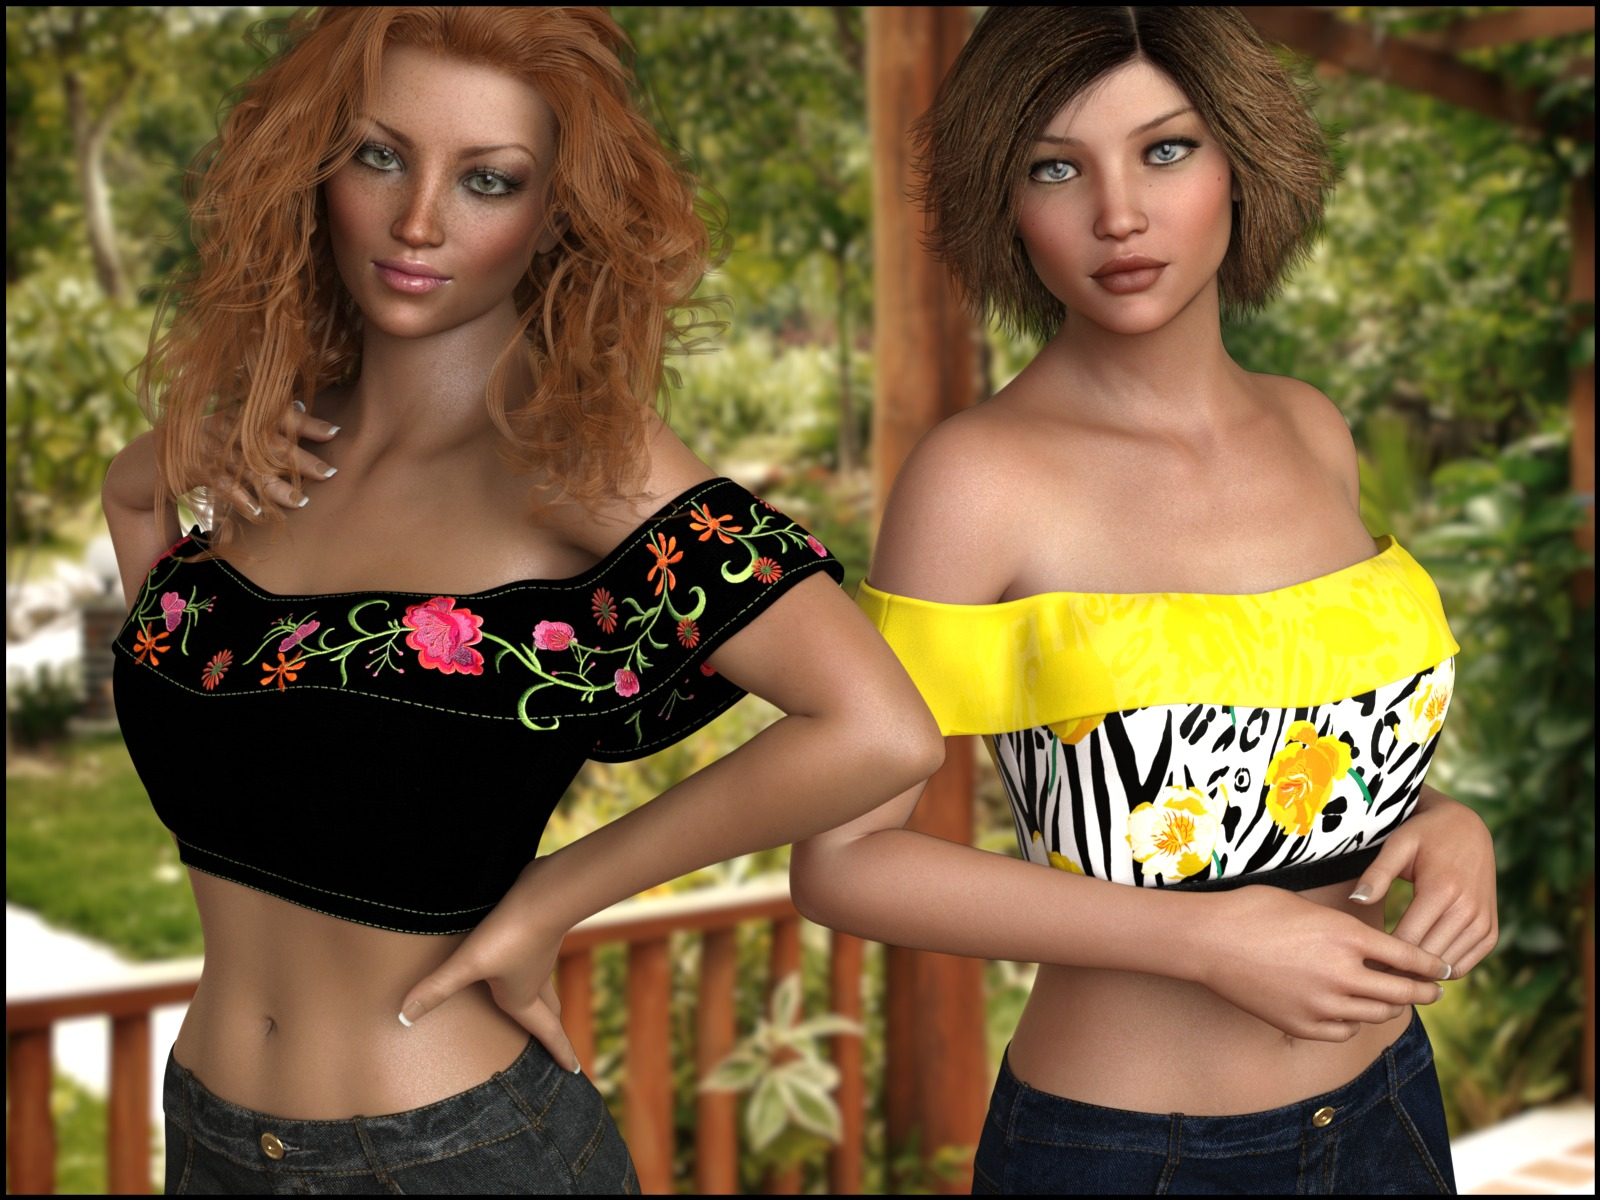 7th Ave: Ruffle Top for Genesis 8 Females